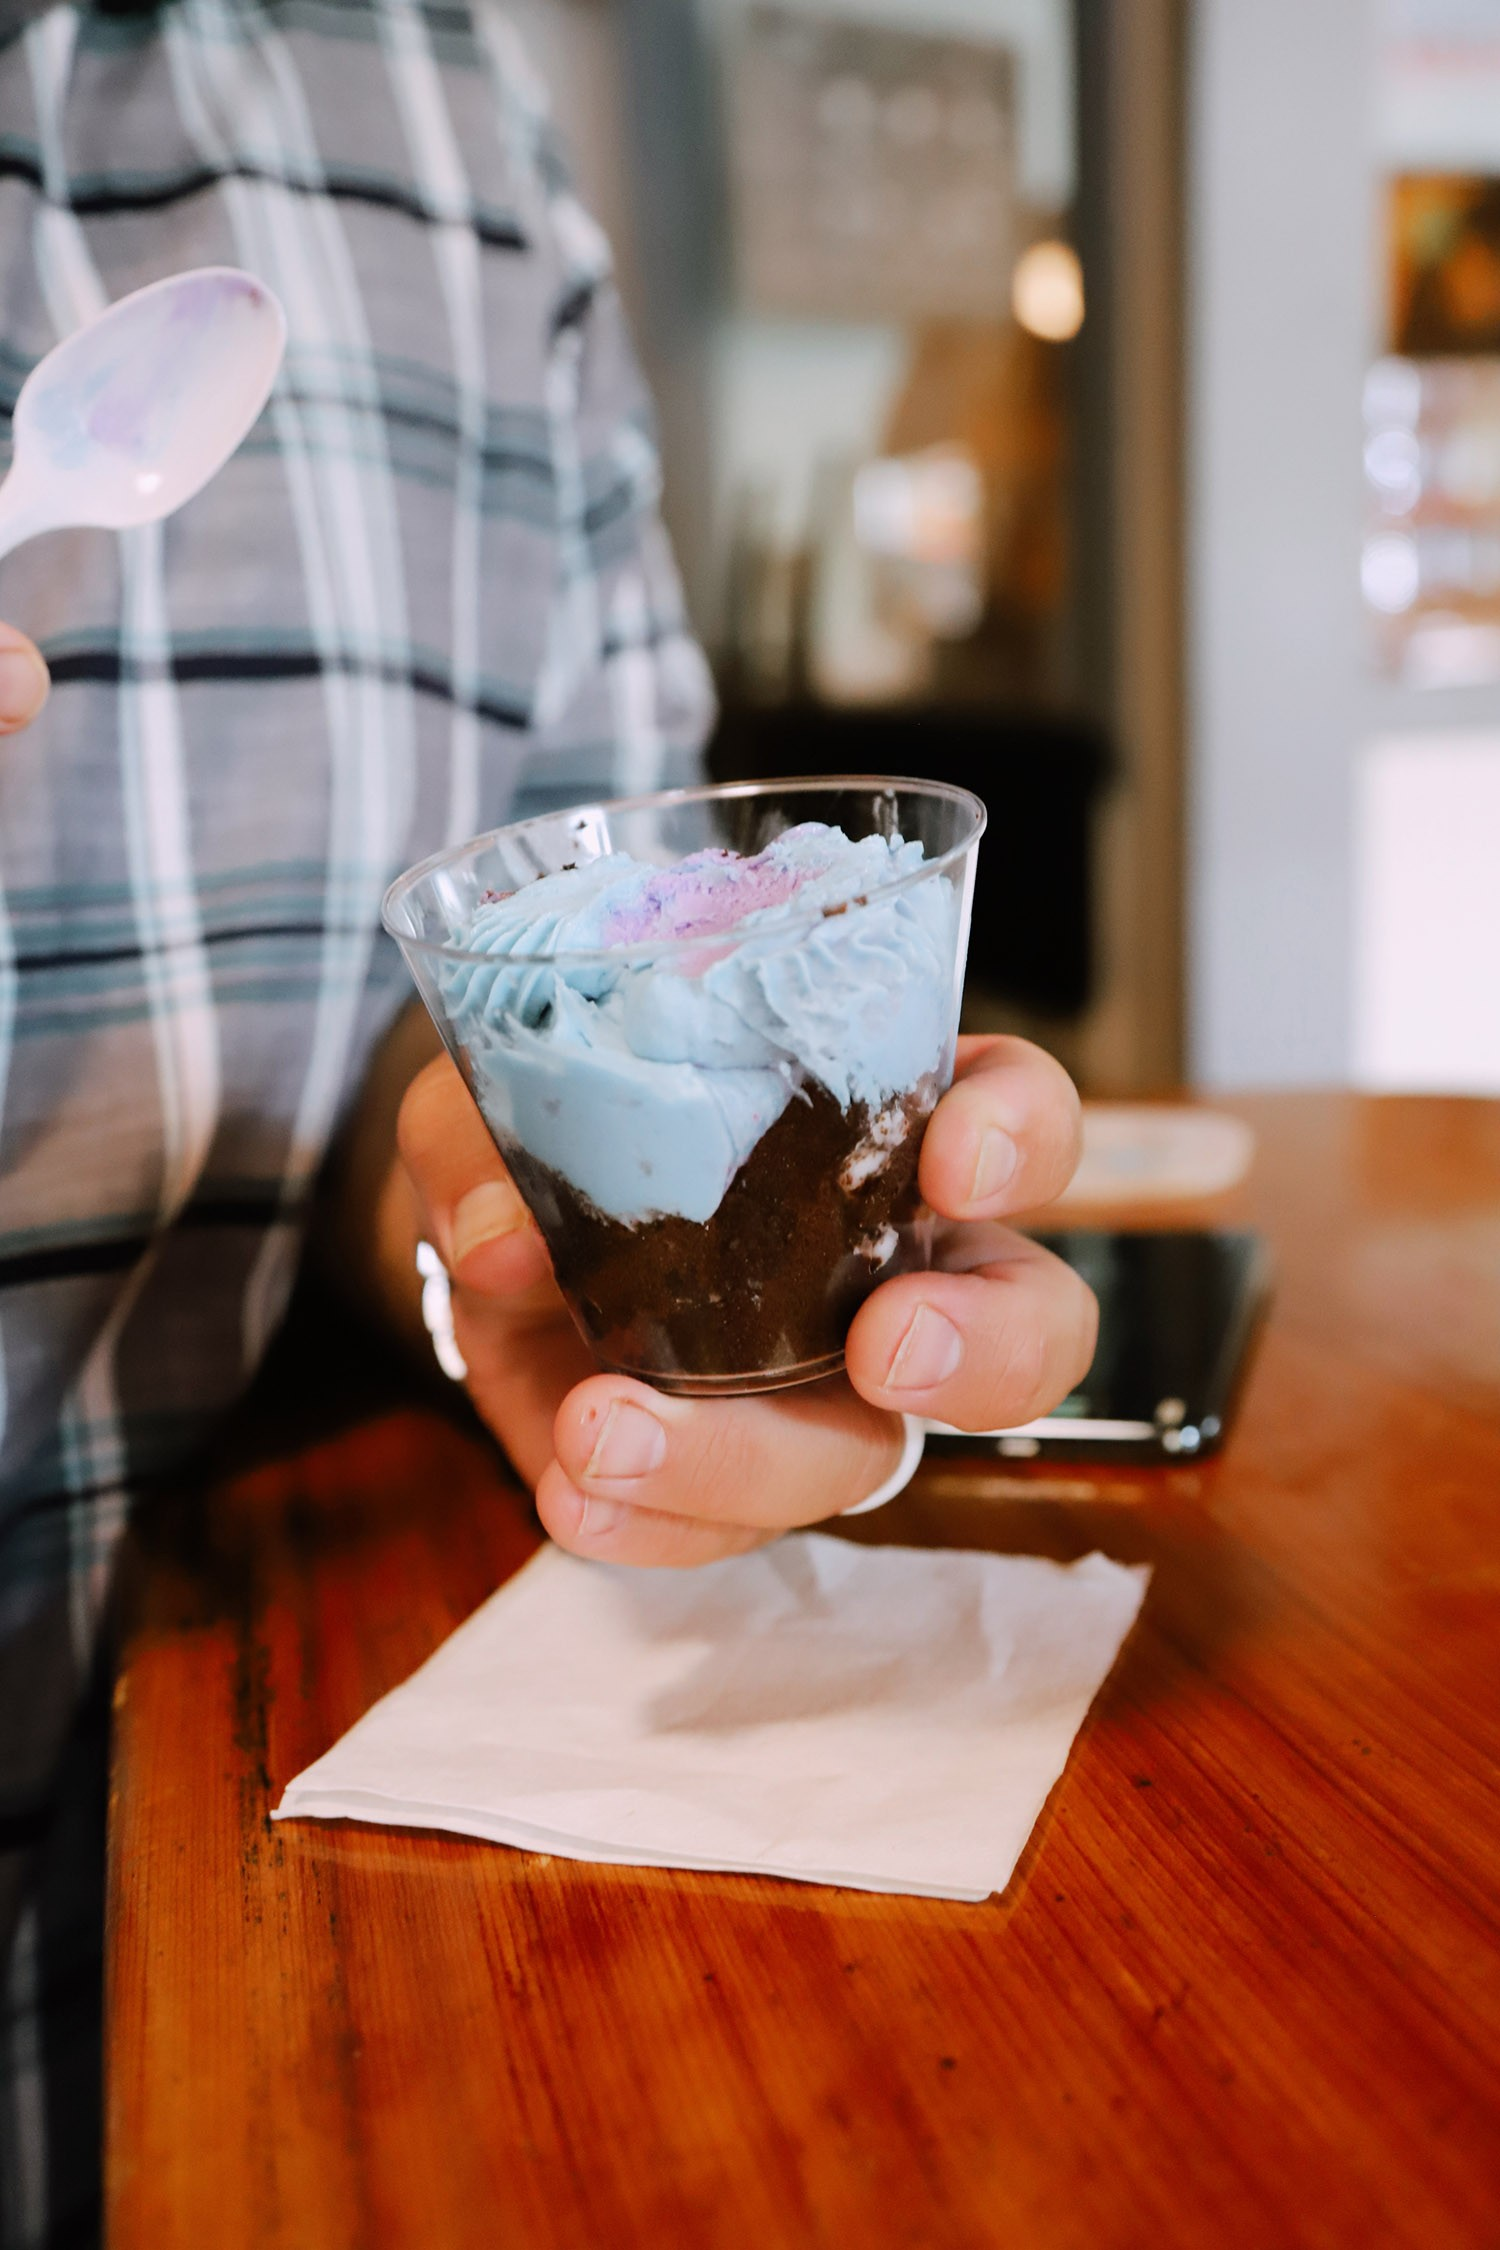 Spectacular Lake County, Florida Staycation Ideas for the Family! | Lake County by popular Florida blog, Fresh Mommy Blog: image of a man holding a dessert cup.